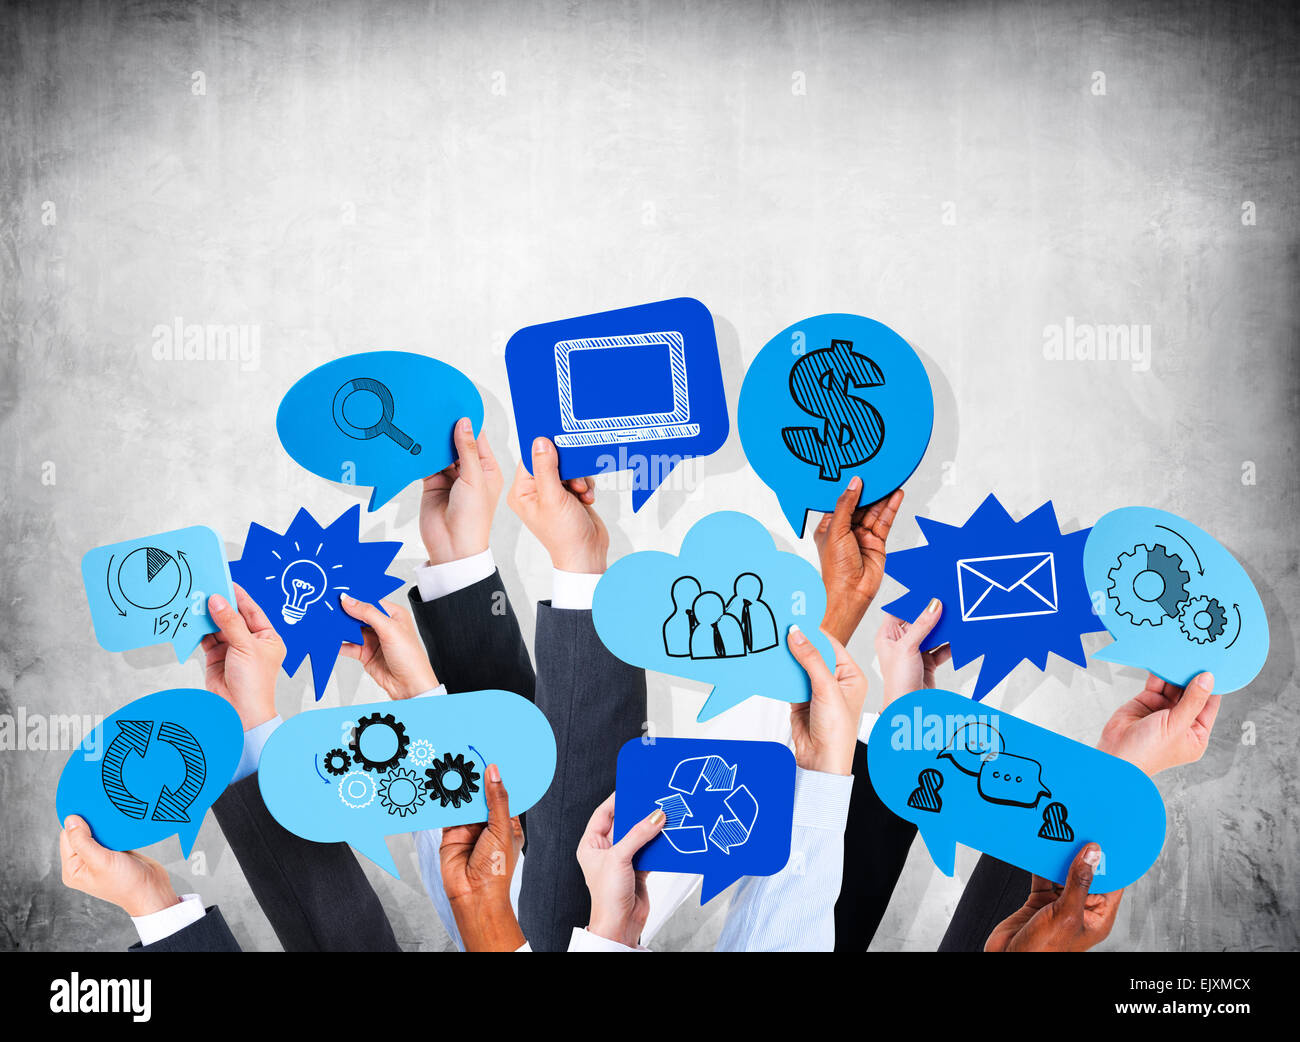 Business people's hands holding the speech bubble with business theme. - Stock Image